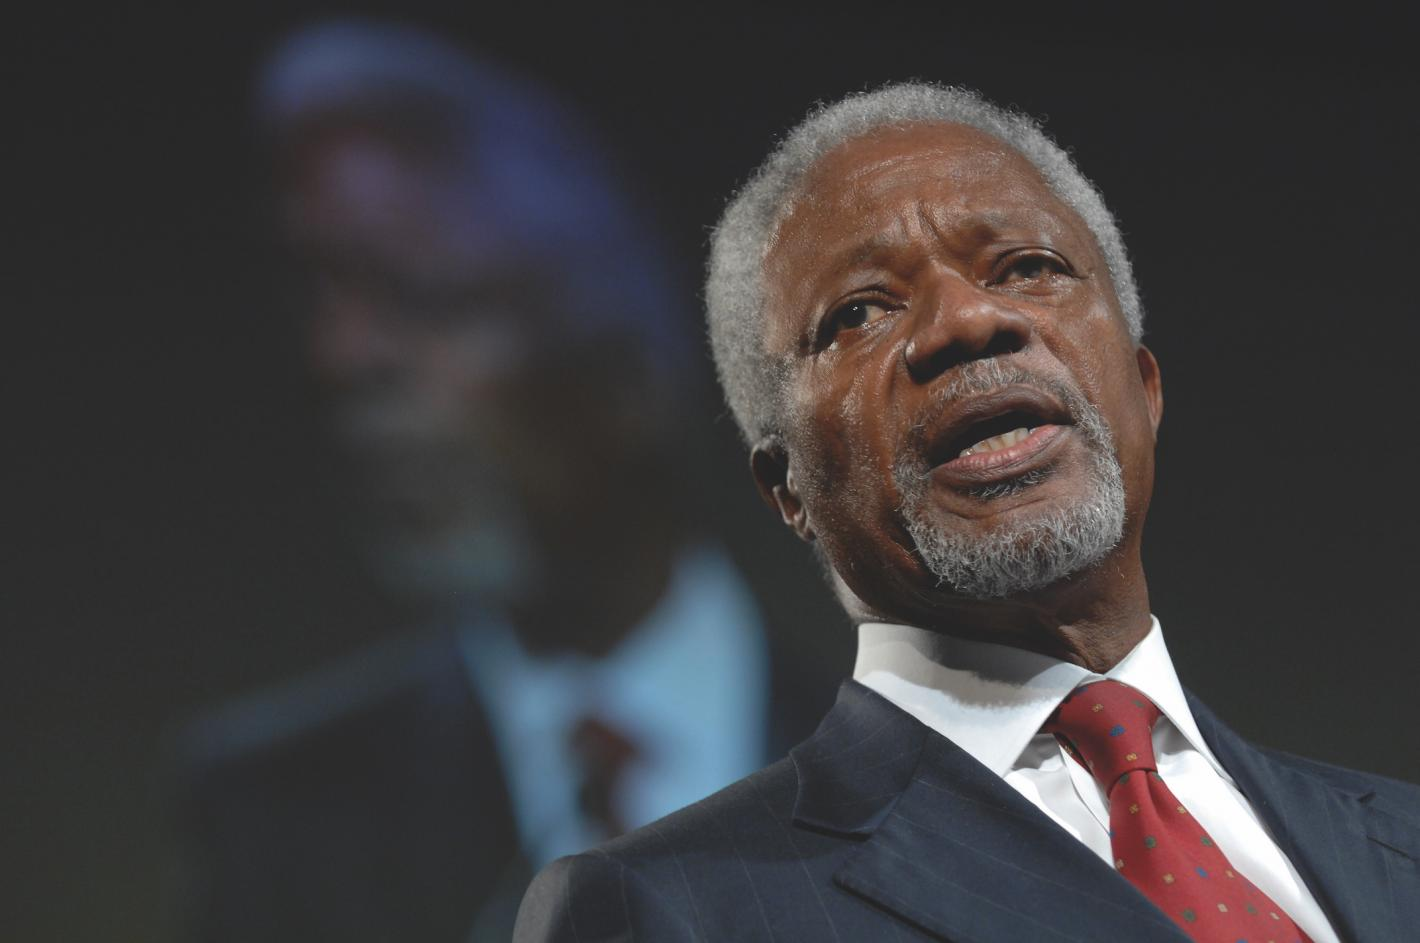 Kofi Annan, former Secretary General of the United Nations